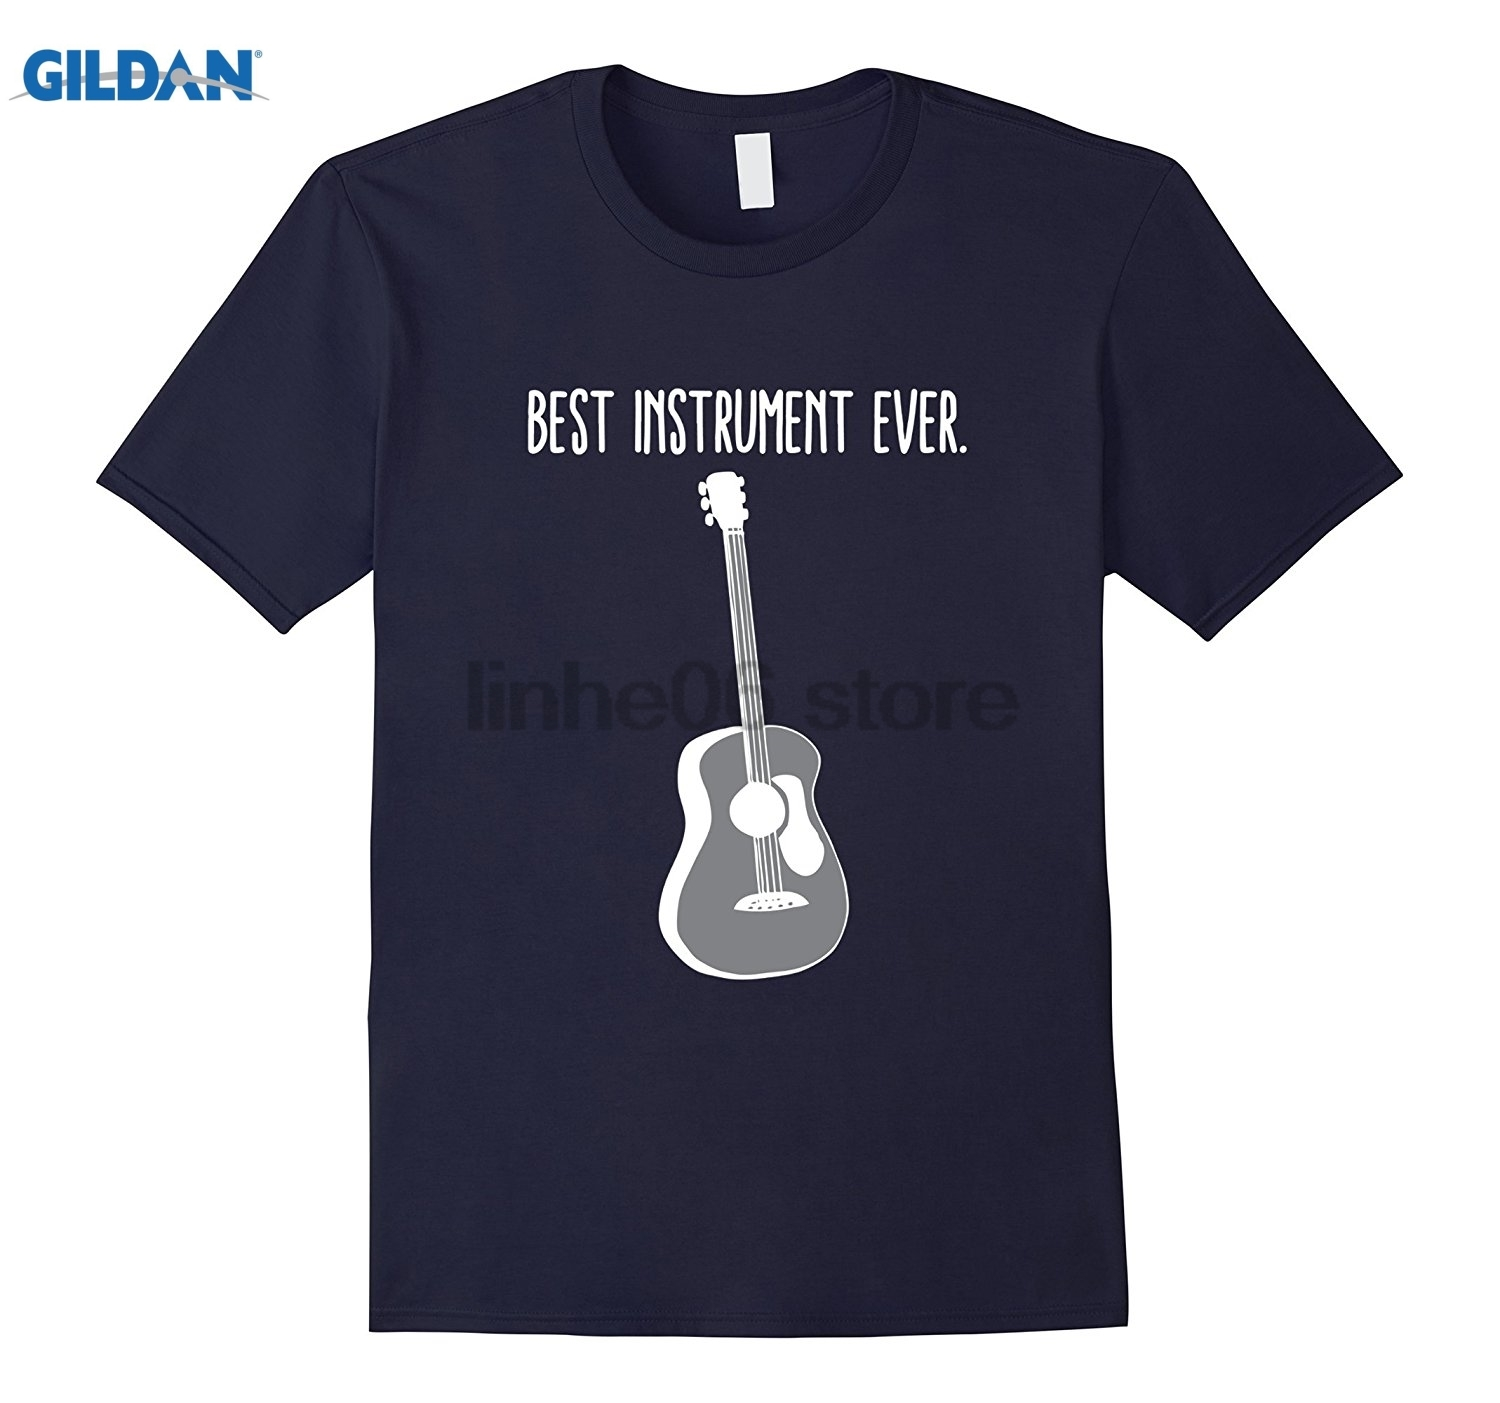 GILDAN Acoustic Guitar Shirt Best Instrument Ever Strings Tuner Pic Hot Womens T-shirt ...